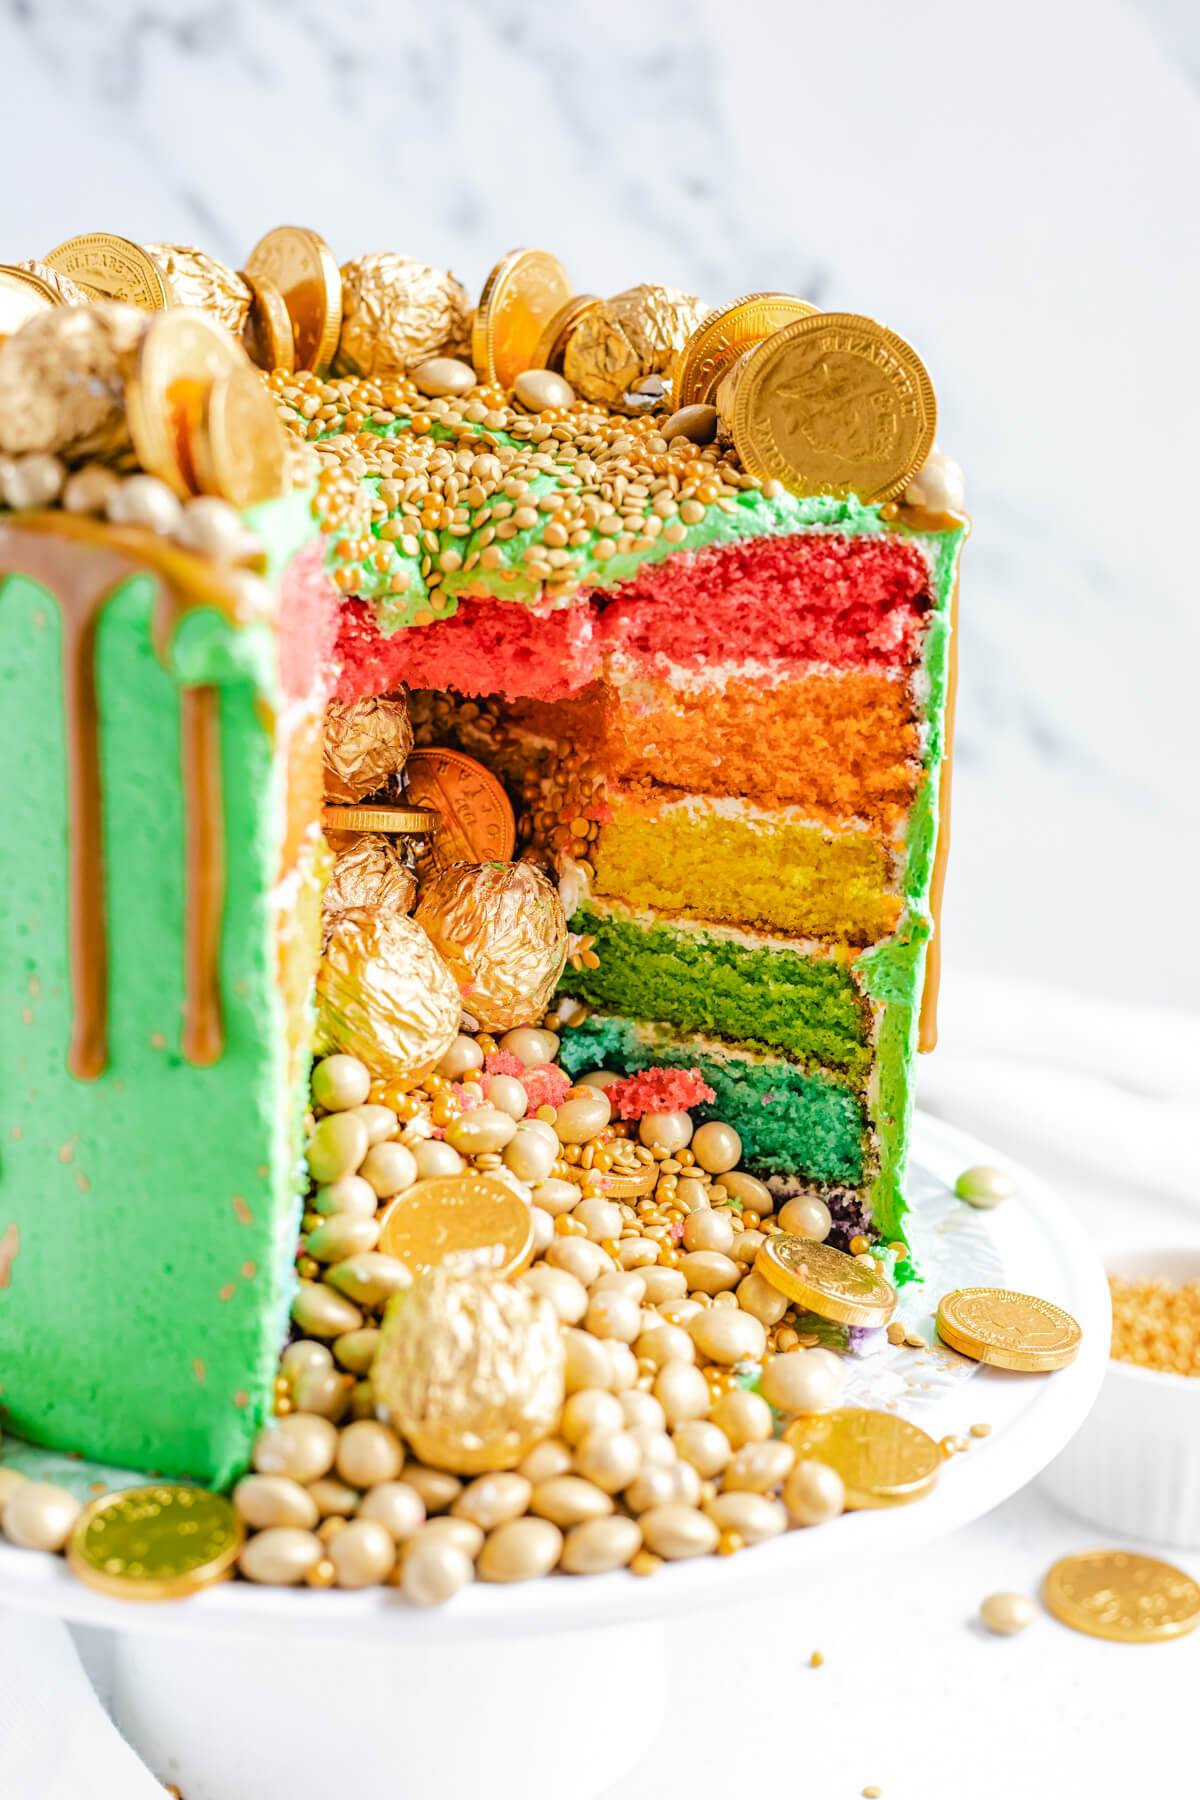 gold candies coming out of rainbow cake